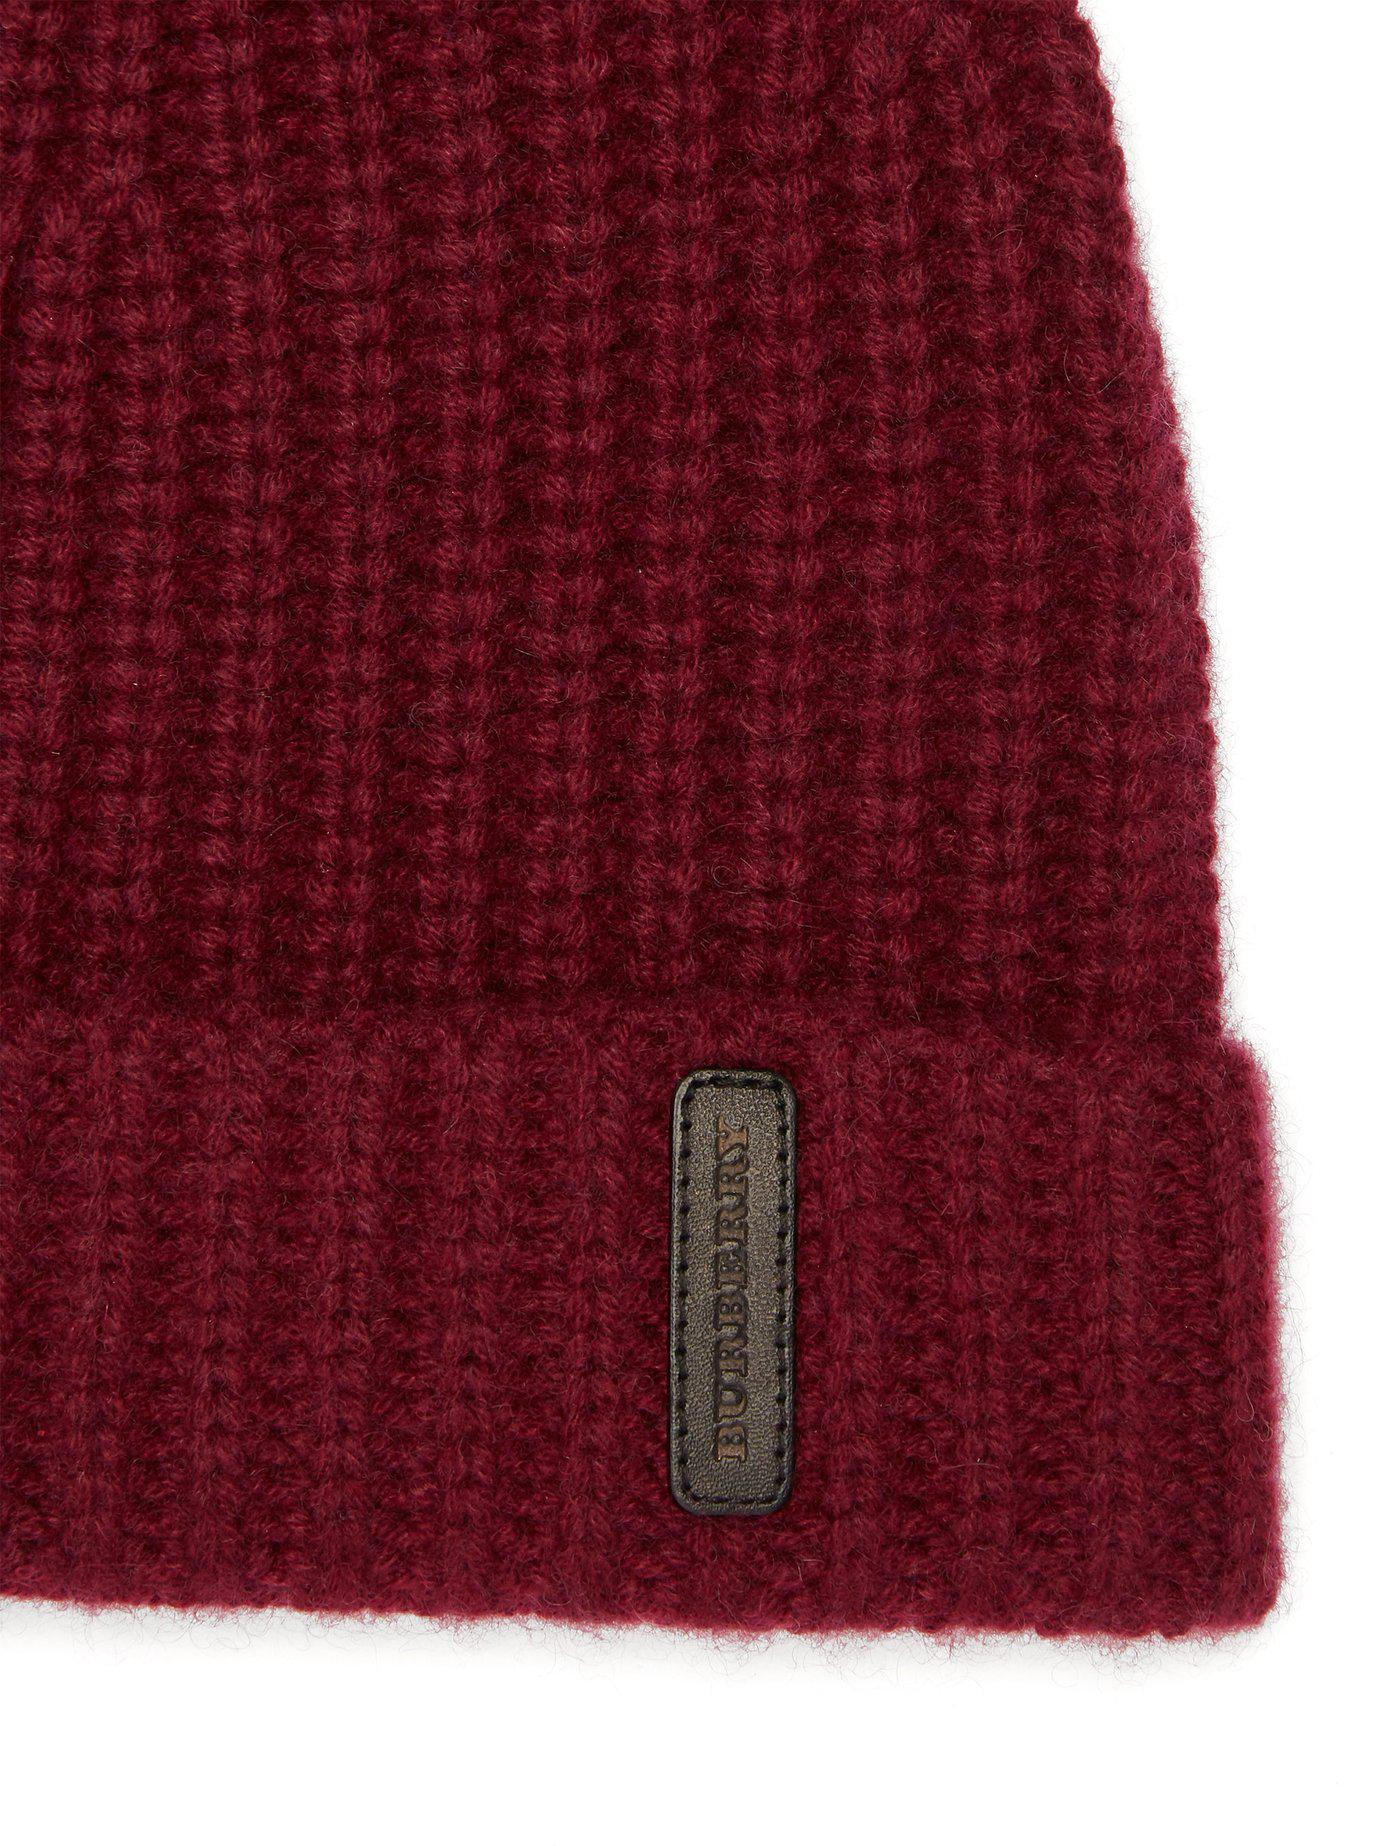 69c533f70dc Burberry Logo Patch Cashmere Beanie for Men - Lyst